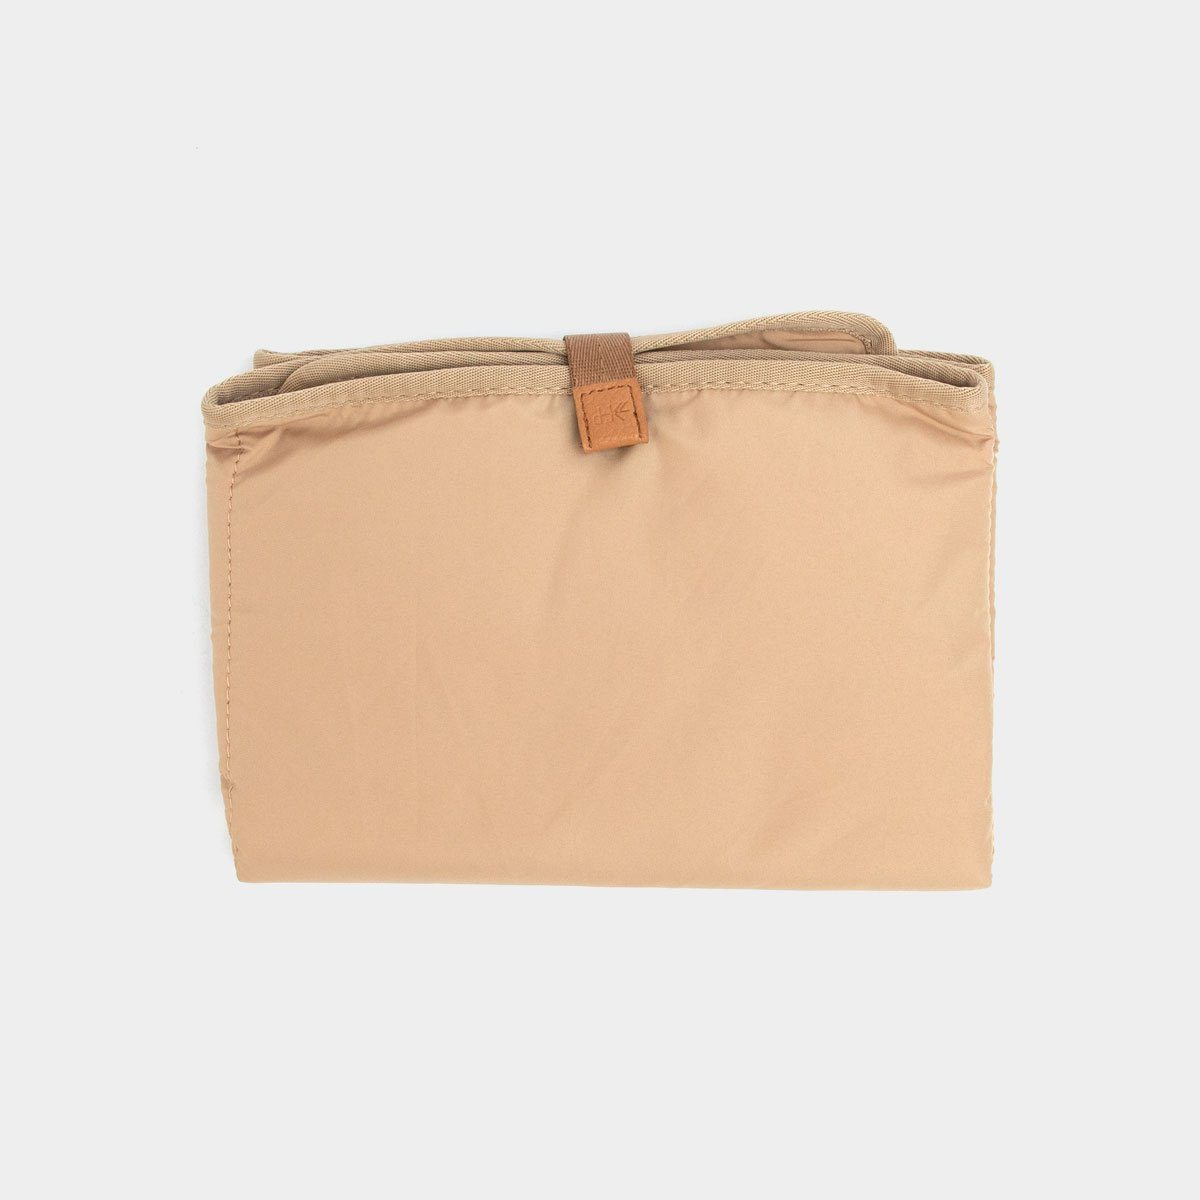 Butterscotch Classic Carryall Classic Carryall Bags